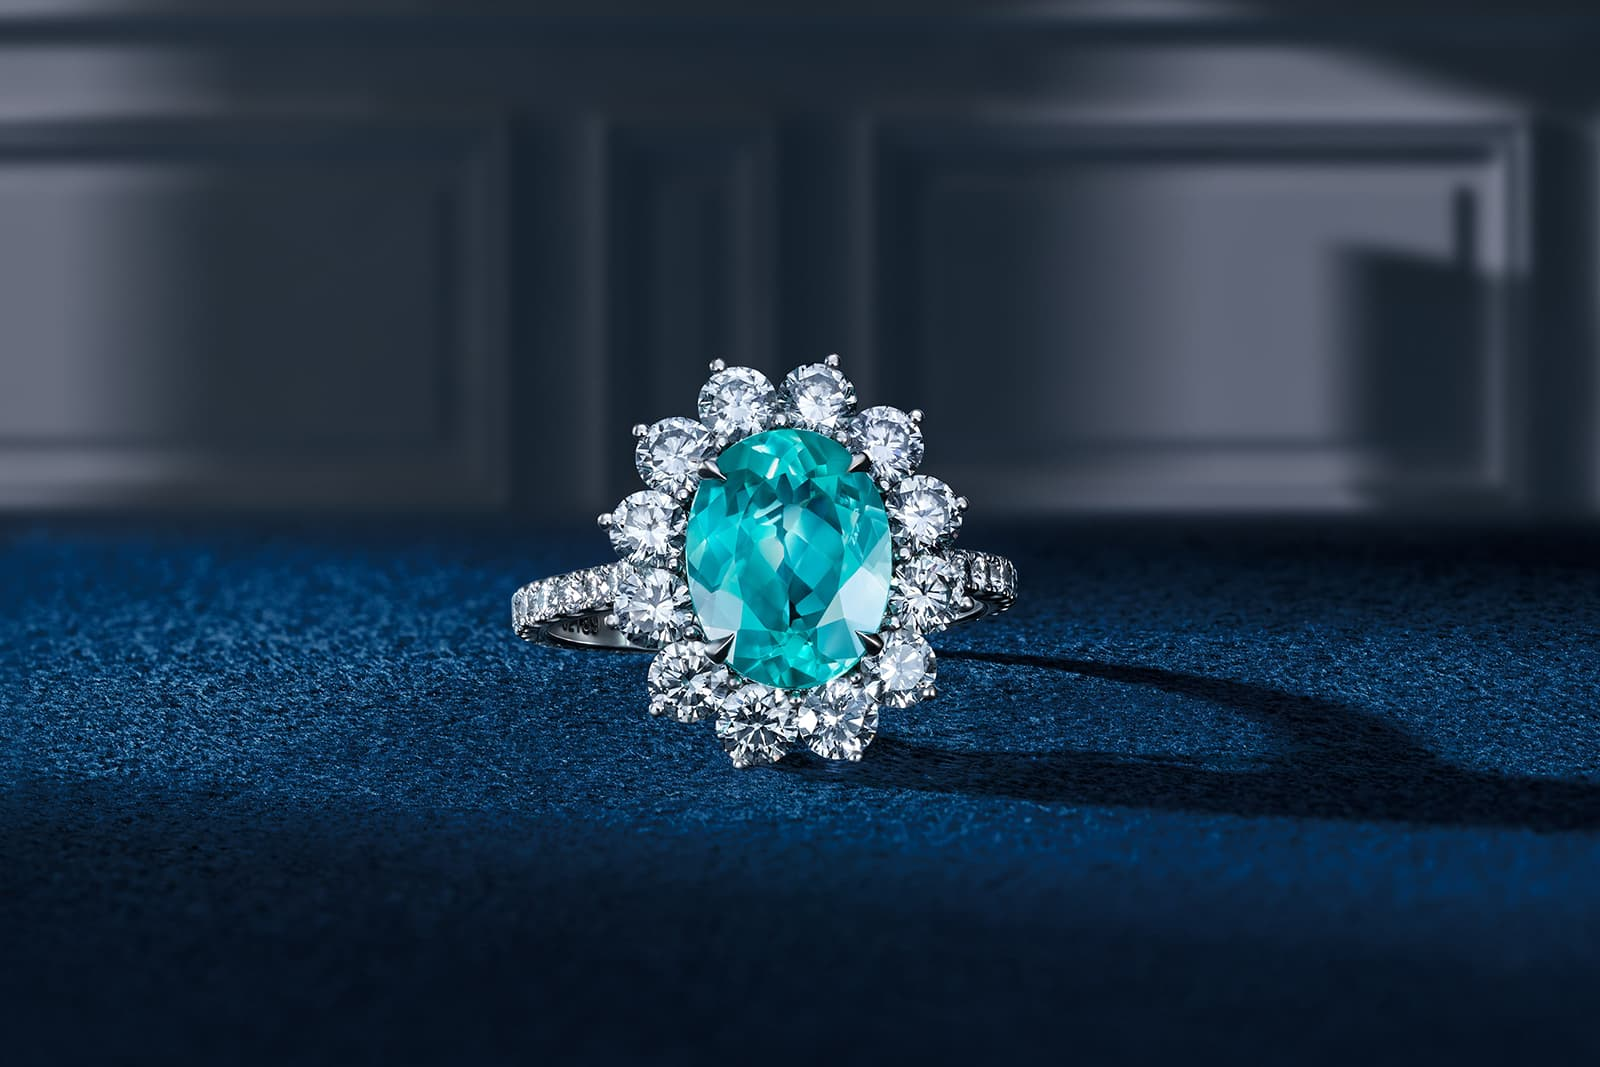 Darvol ring with oval Paraiba tourmaline and diamonds